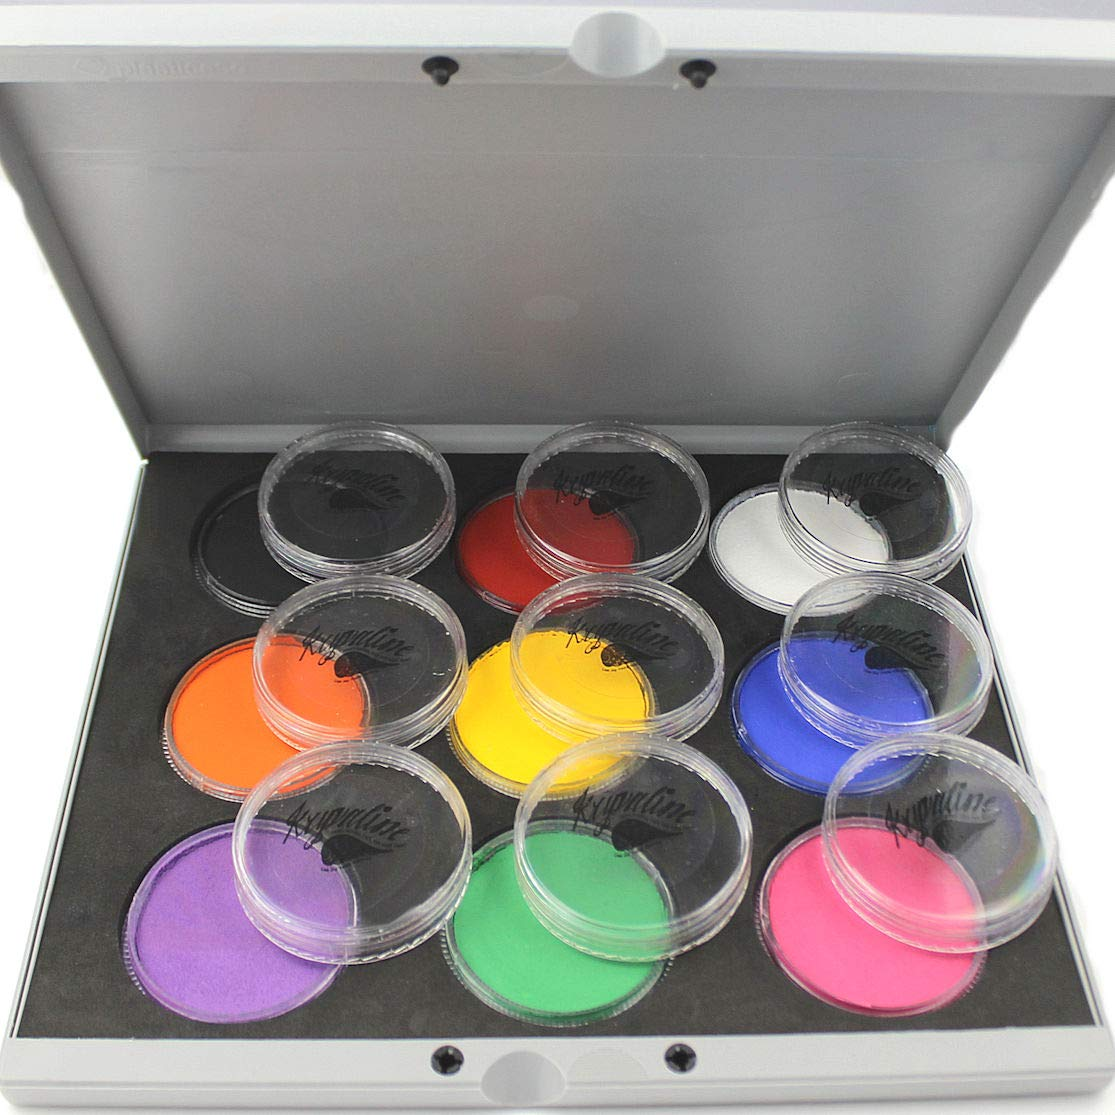 Face Painting Palette with Kryvaline Regular Line Essential Colors 30g Each Made with FDA Approved Materials Enough for Creating 500 Designs by Kryvaline